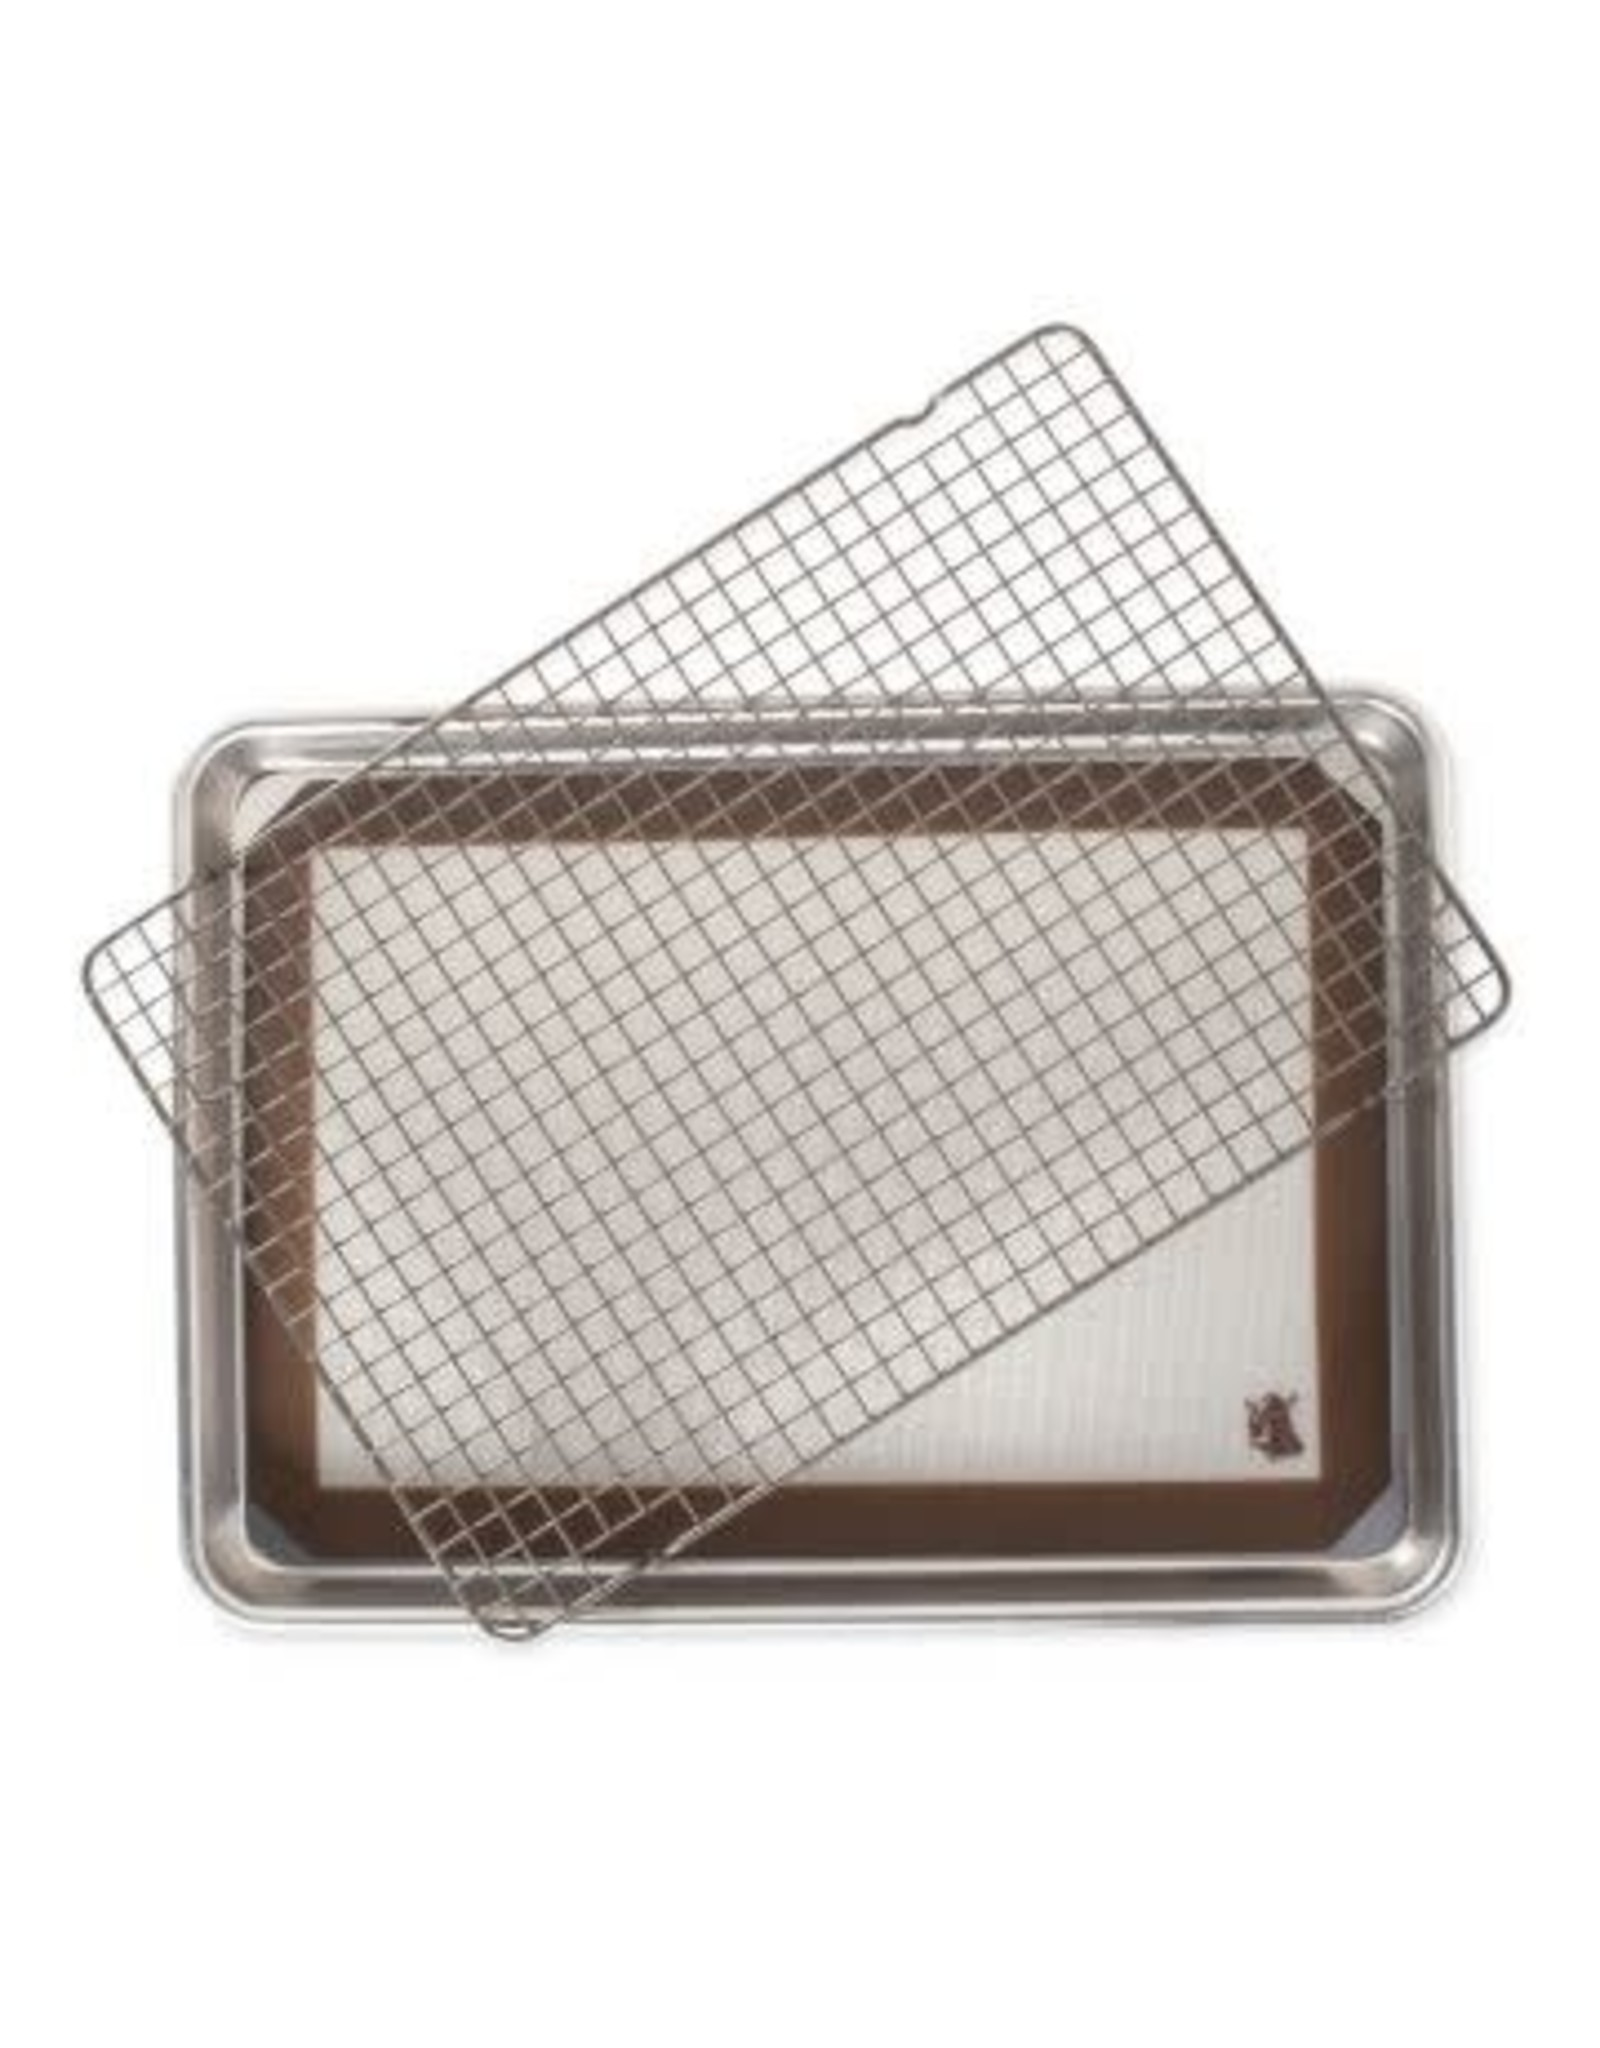 Nordicware NORDICWARE-cookie baking 3pc set